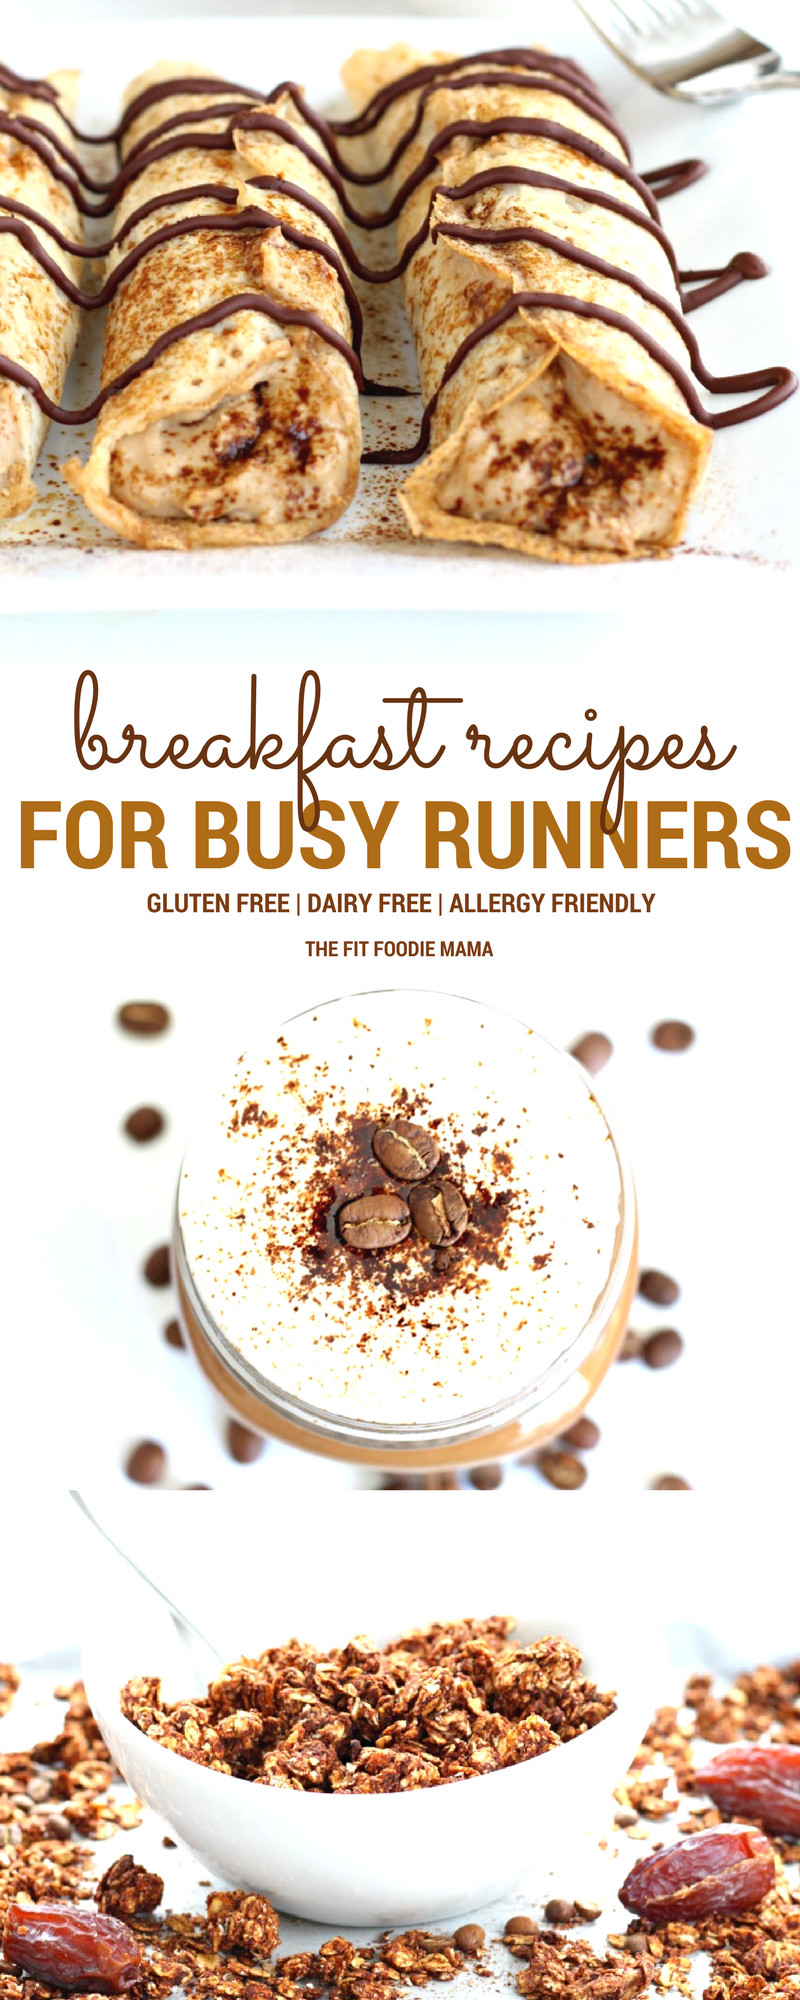 Healthy Breakfast For Runners  5 Quick and Healthy Recipes for Busy Runners